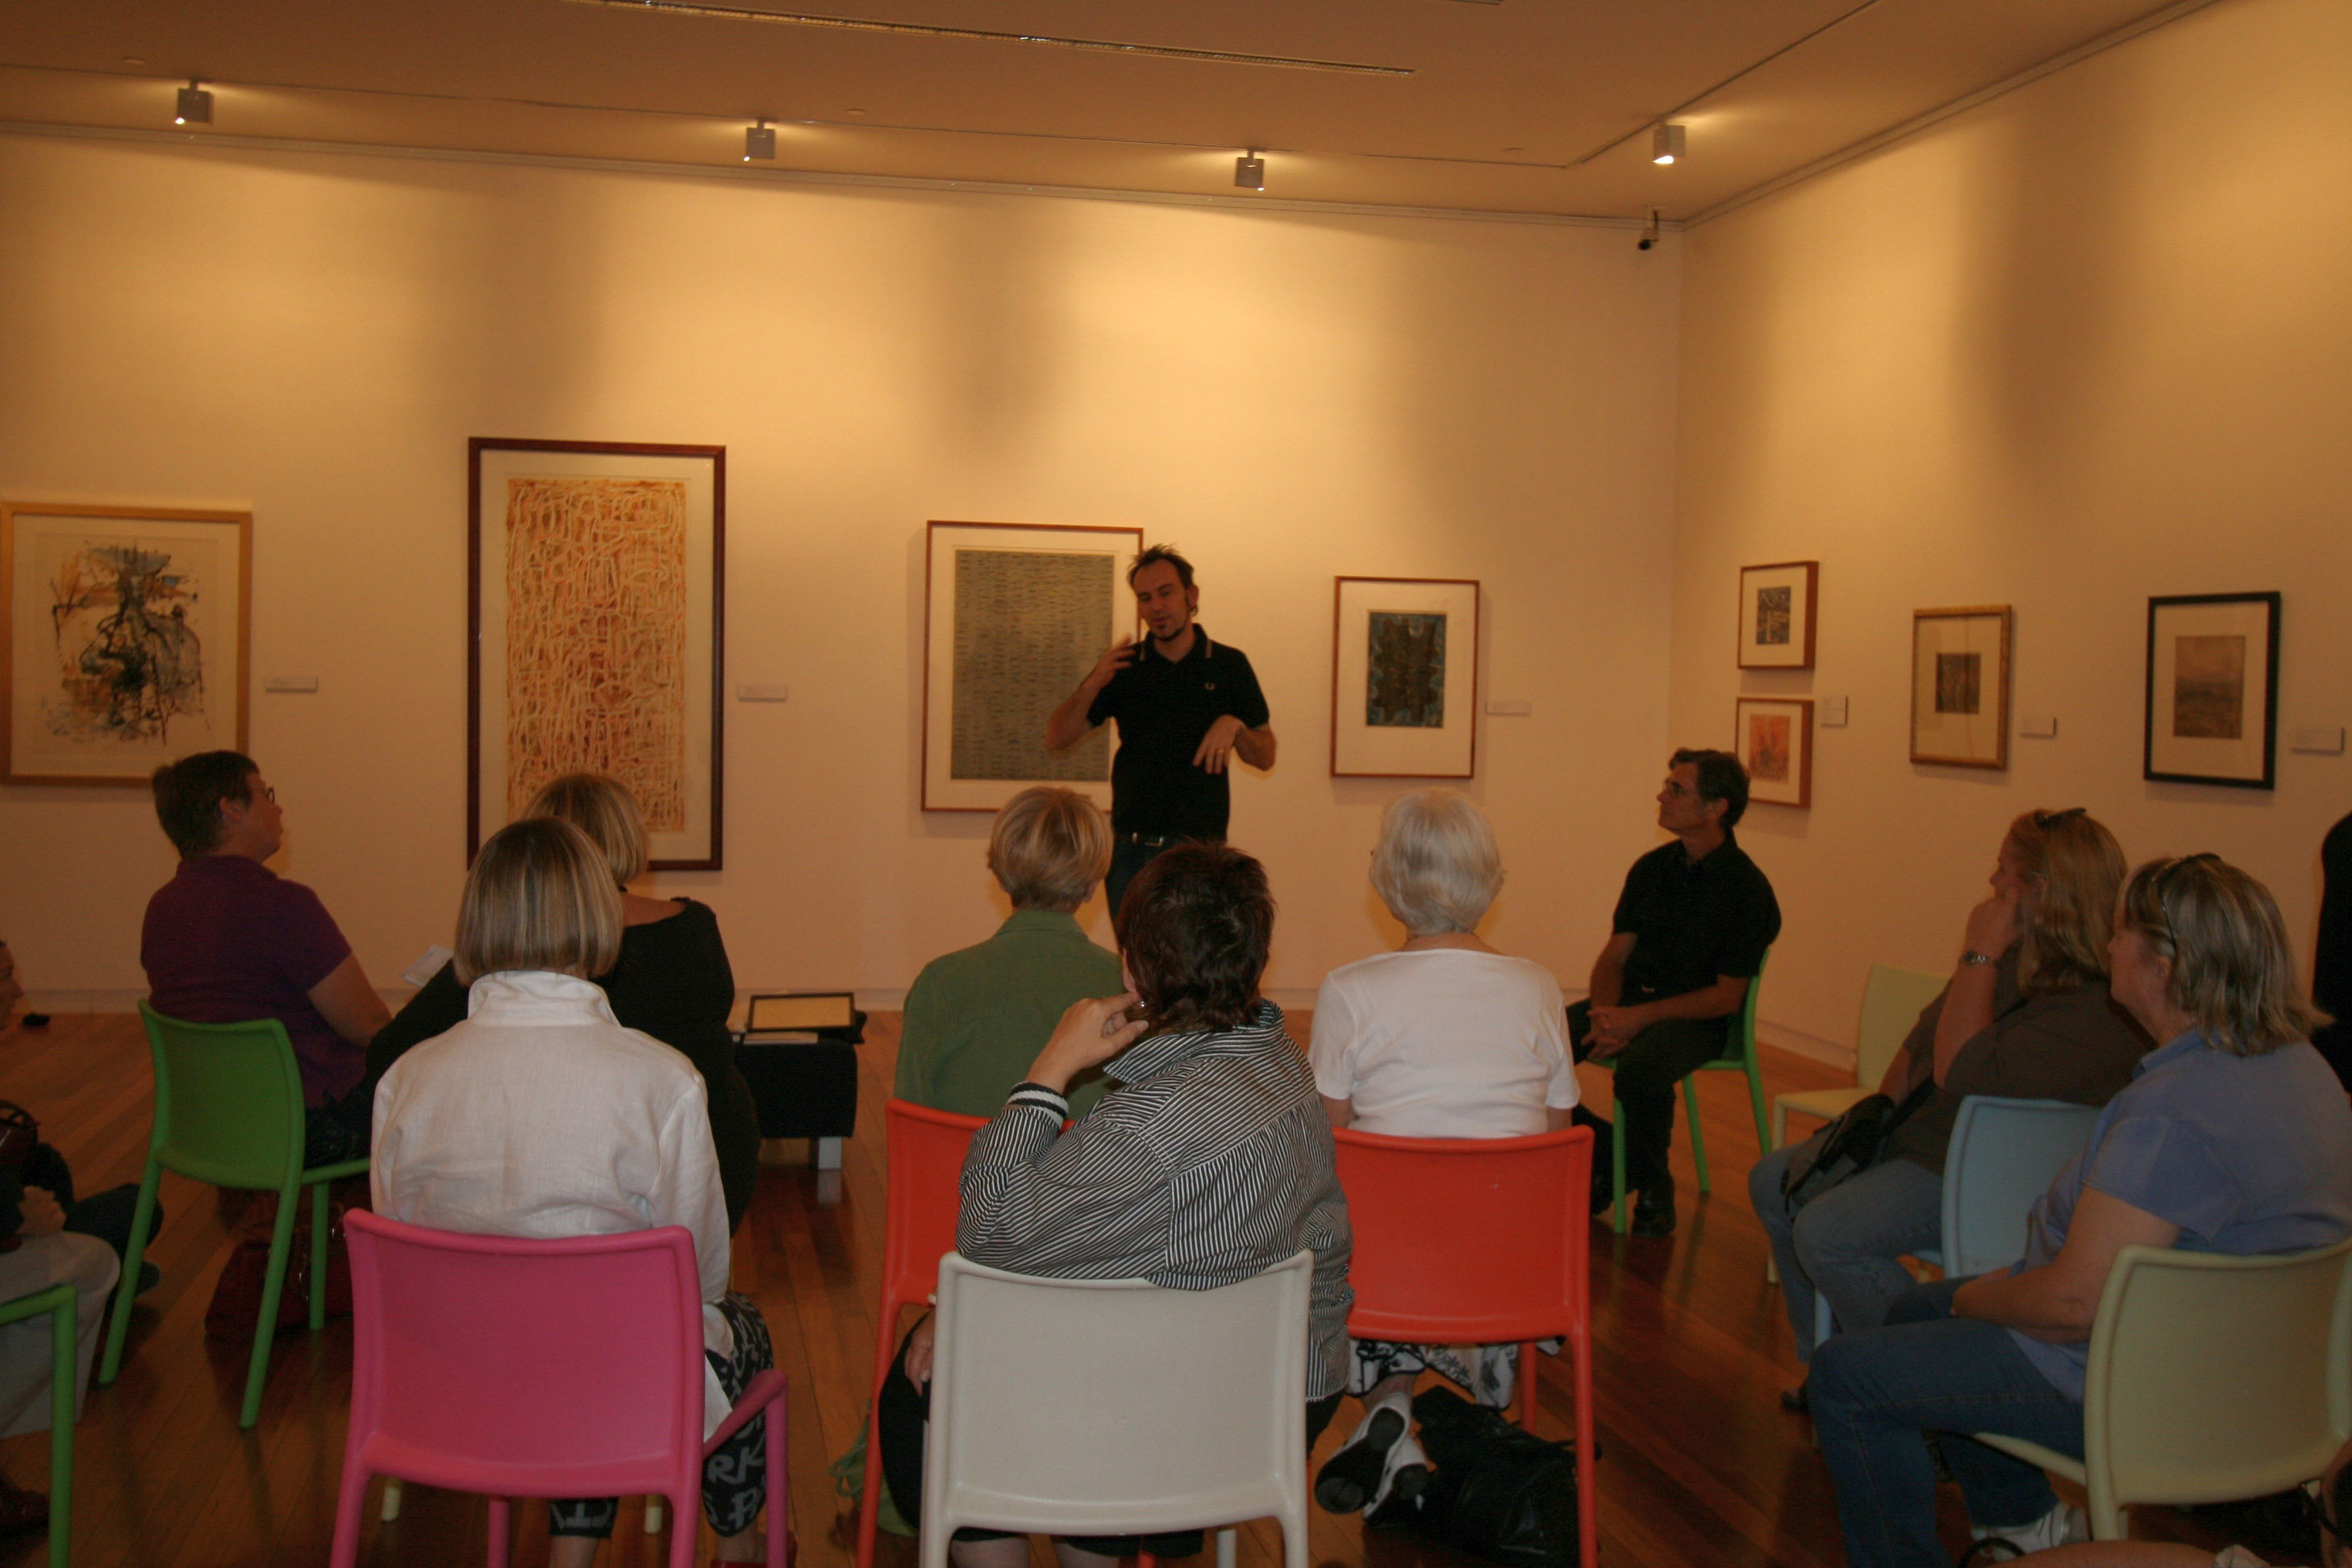 The opening of the MONOuno exhibition at the Wagga Wagga Art Gallery